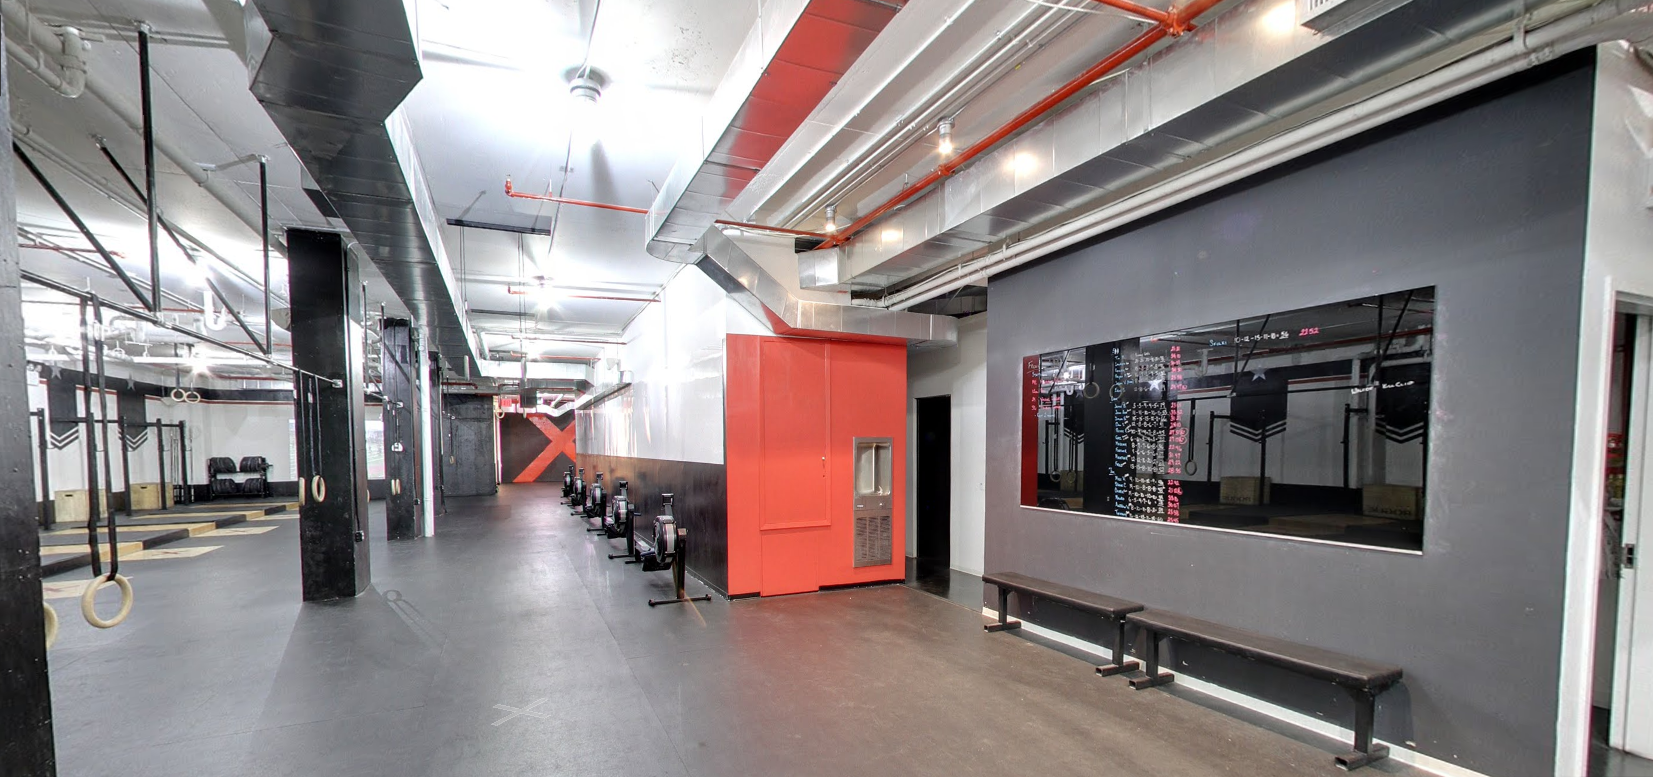 A bright red wall surrounded by fitness equipment and benches in the Tribeca location of Crossfit with MEP designed by 2L Engineering.